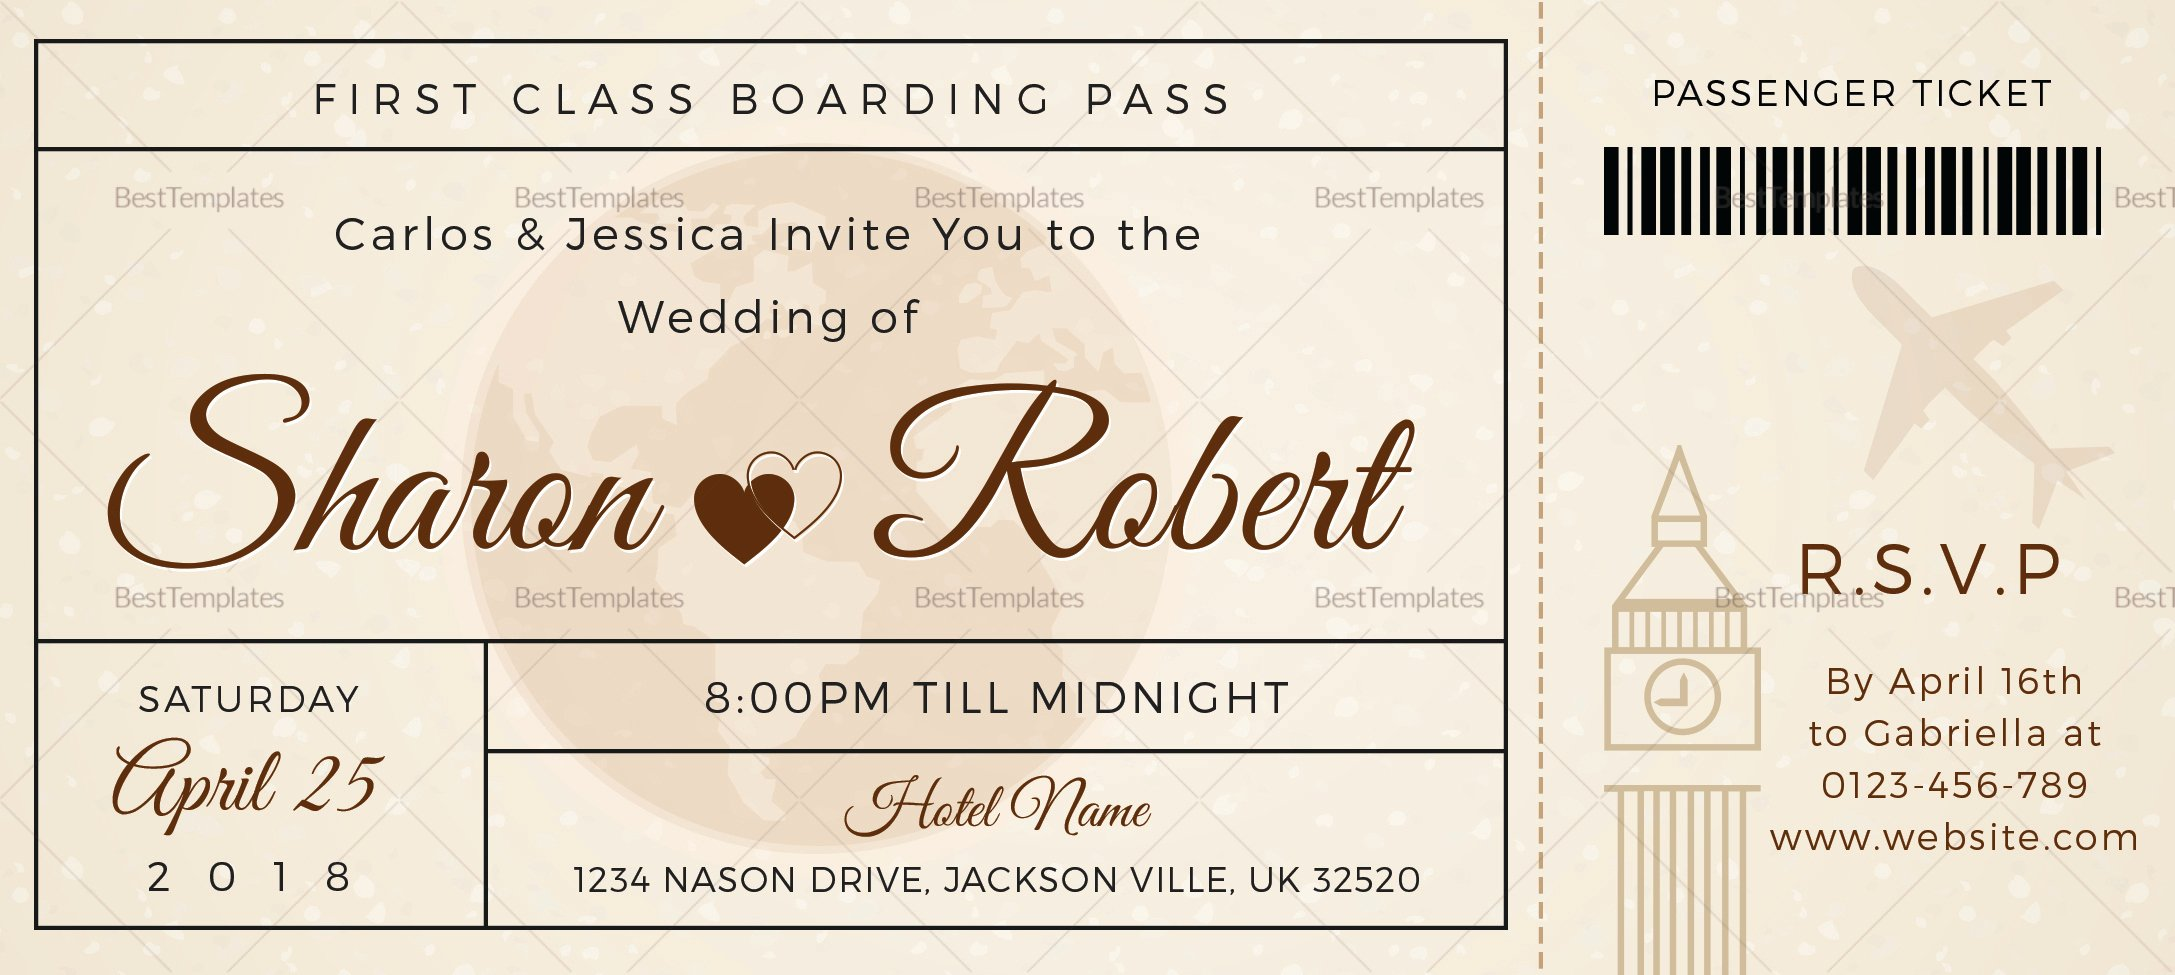 Boarding Pass Wedding Invitations Template New Wedding Boarding Pass Invitation Ticket Design Template In Psd Word Publisher Pages